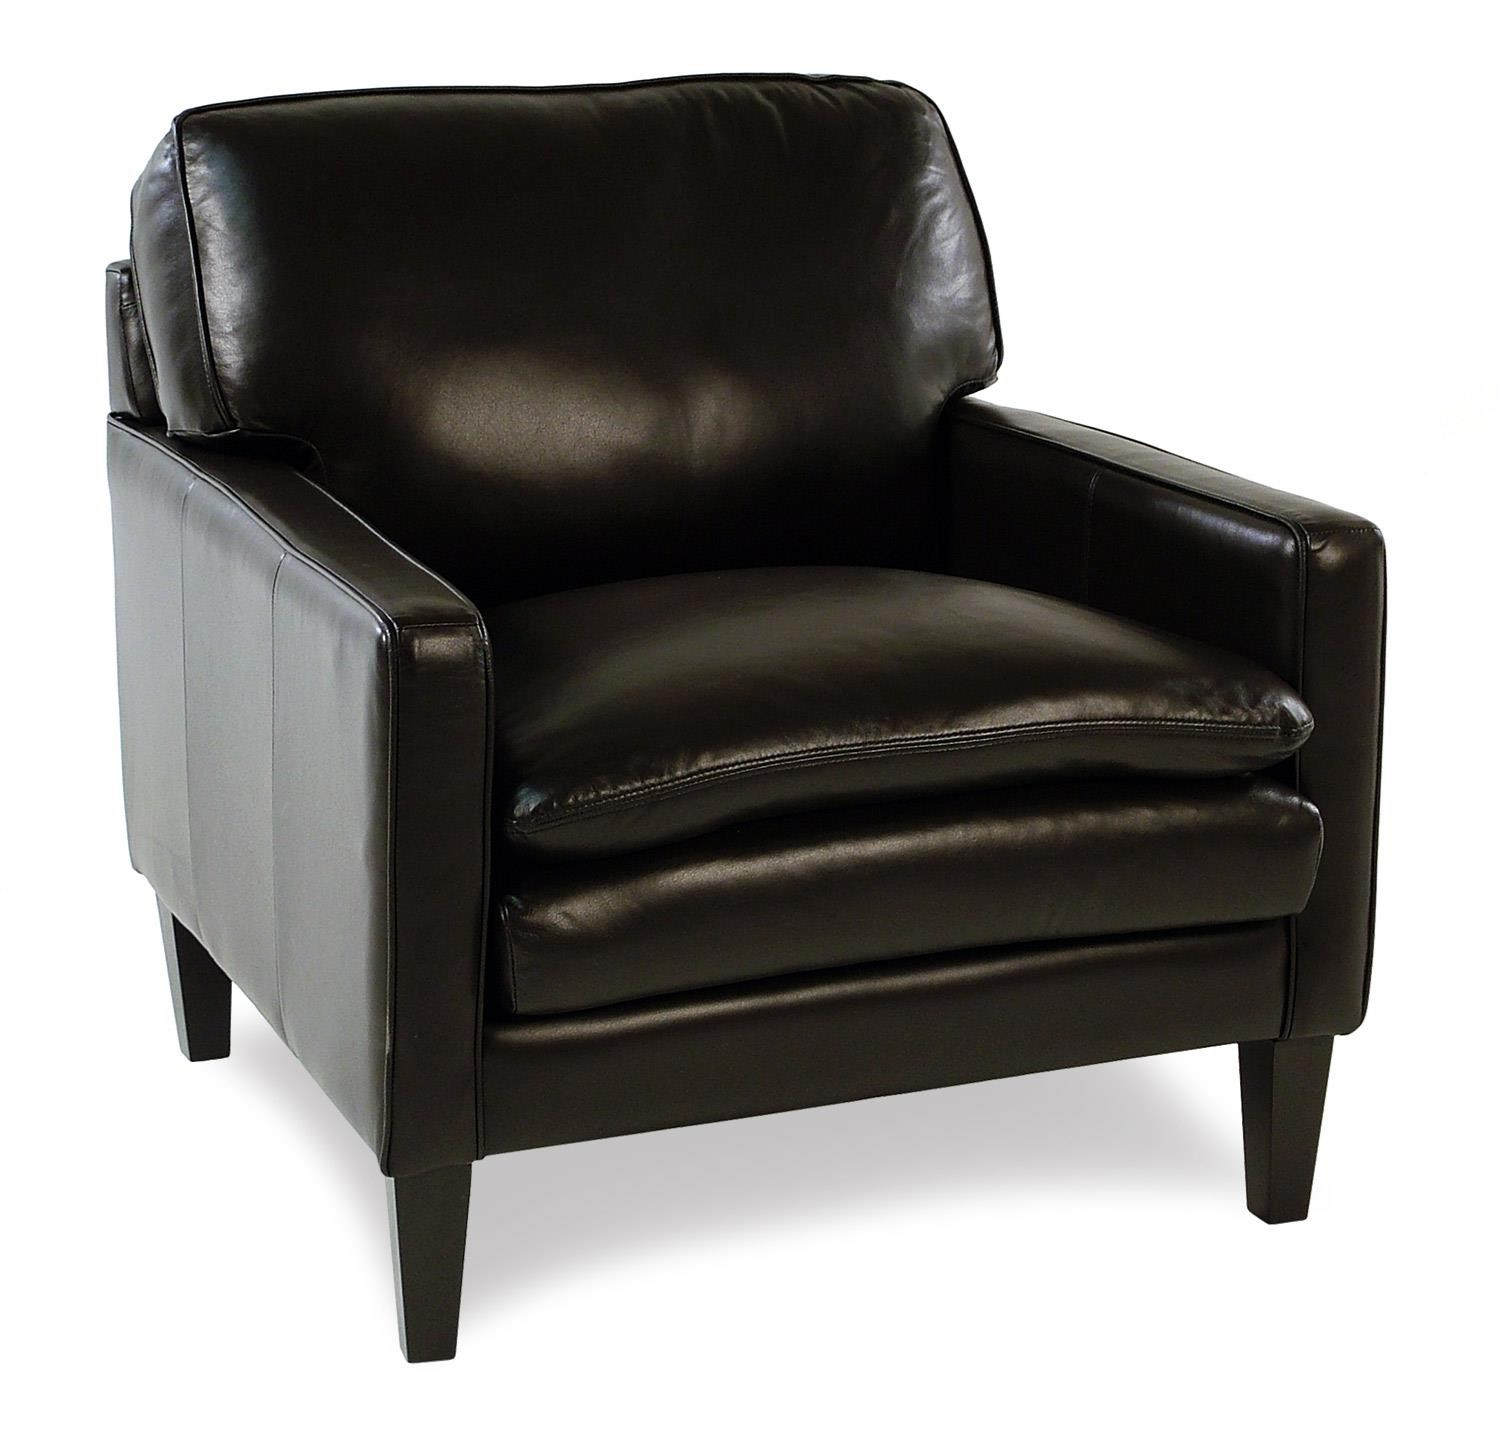 Decor-Rest Lorenzo Leather Chair w/ Tapered Legs - Item Number: 3565C-ESPRESSO